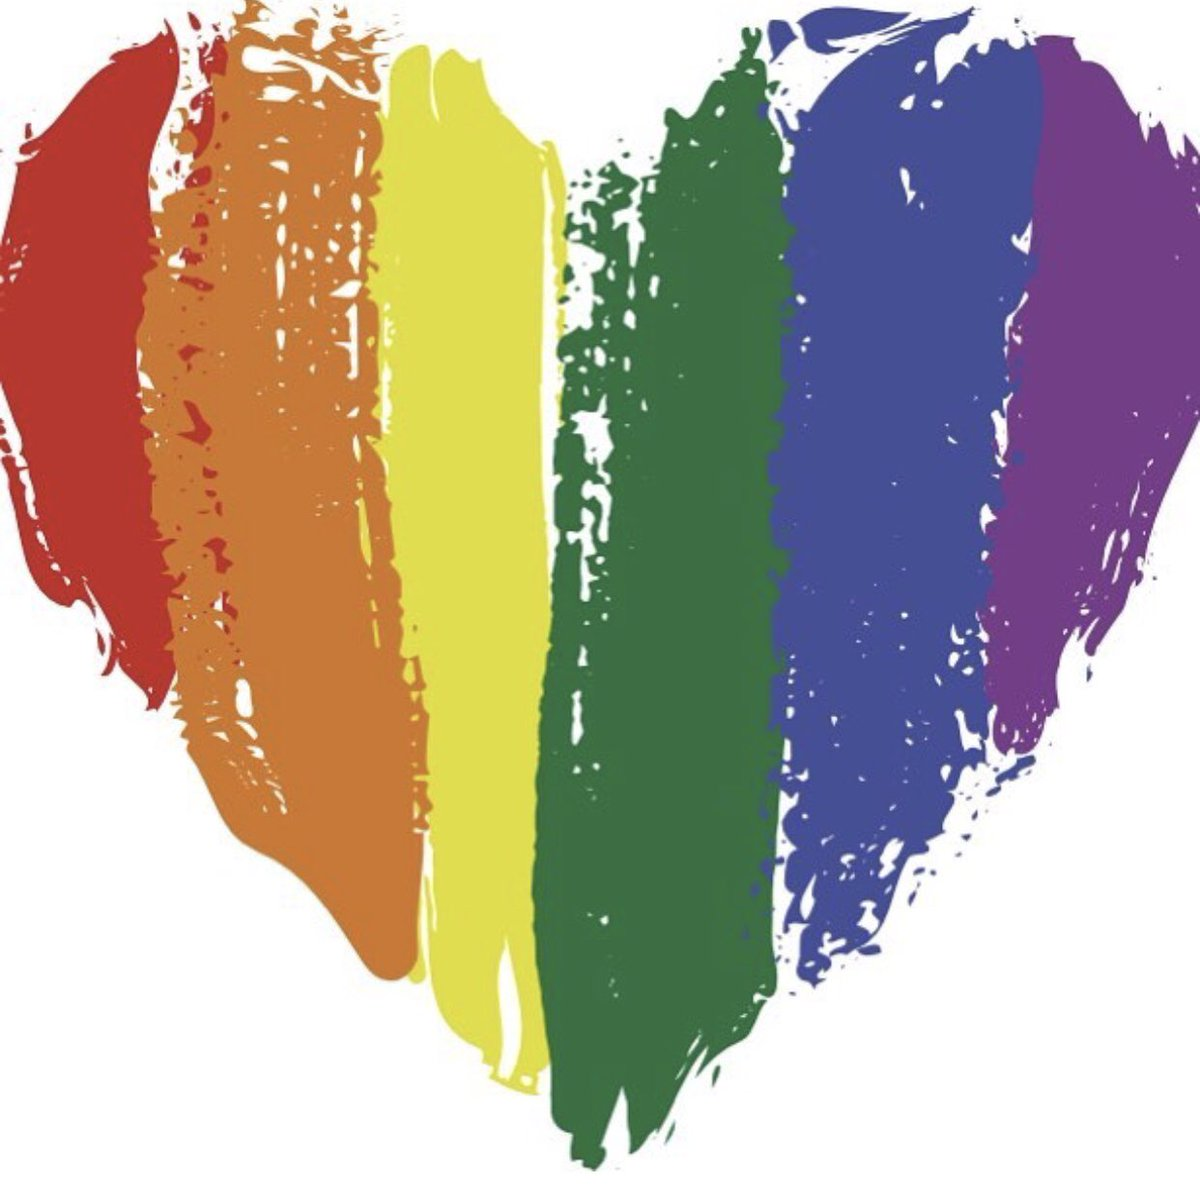 the Australian people have spoken loud and clear. #LoveIsLove 🏳️🌈🏳️🌈🏳️🌈